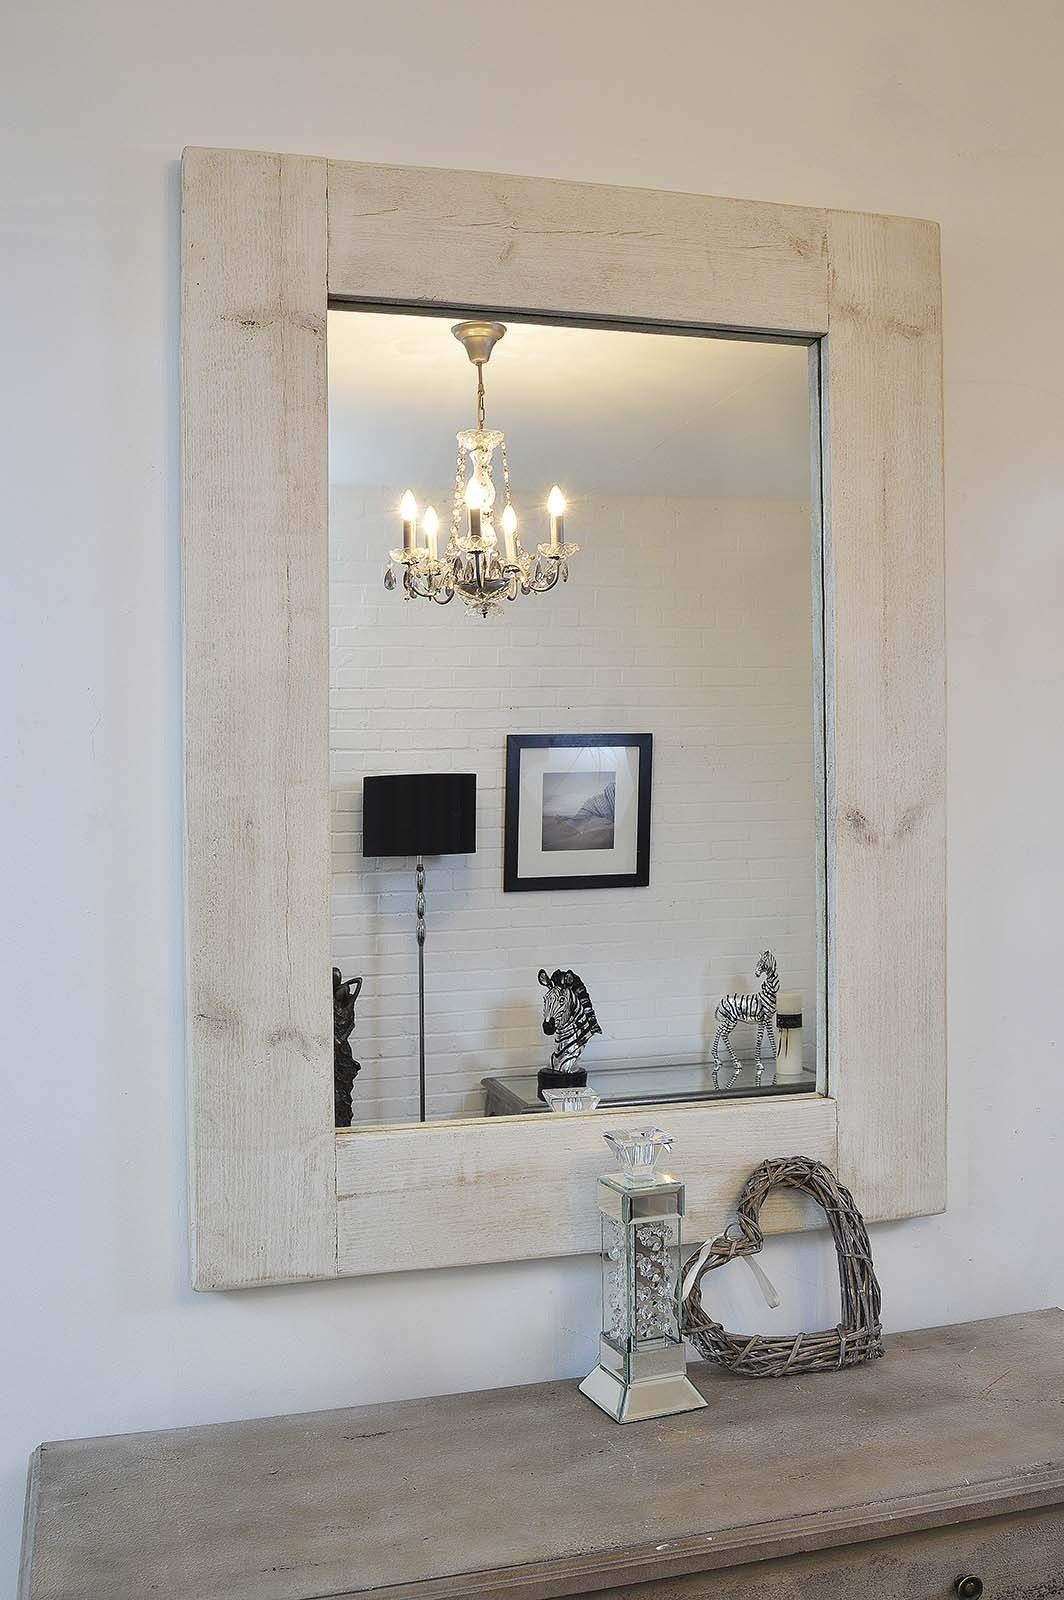 Large rustic white solid wood wall mirror 4ft x 3ft 122cm x 91cm large rustic white solid wood wall mirror 4ft x 3ft 122cm x 91cm amipublicfo Choice Image